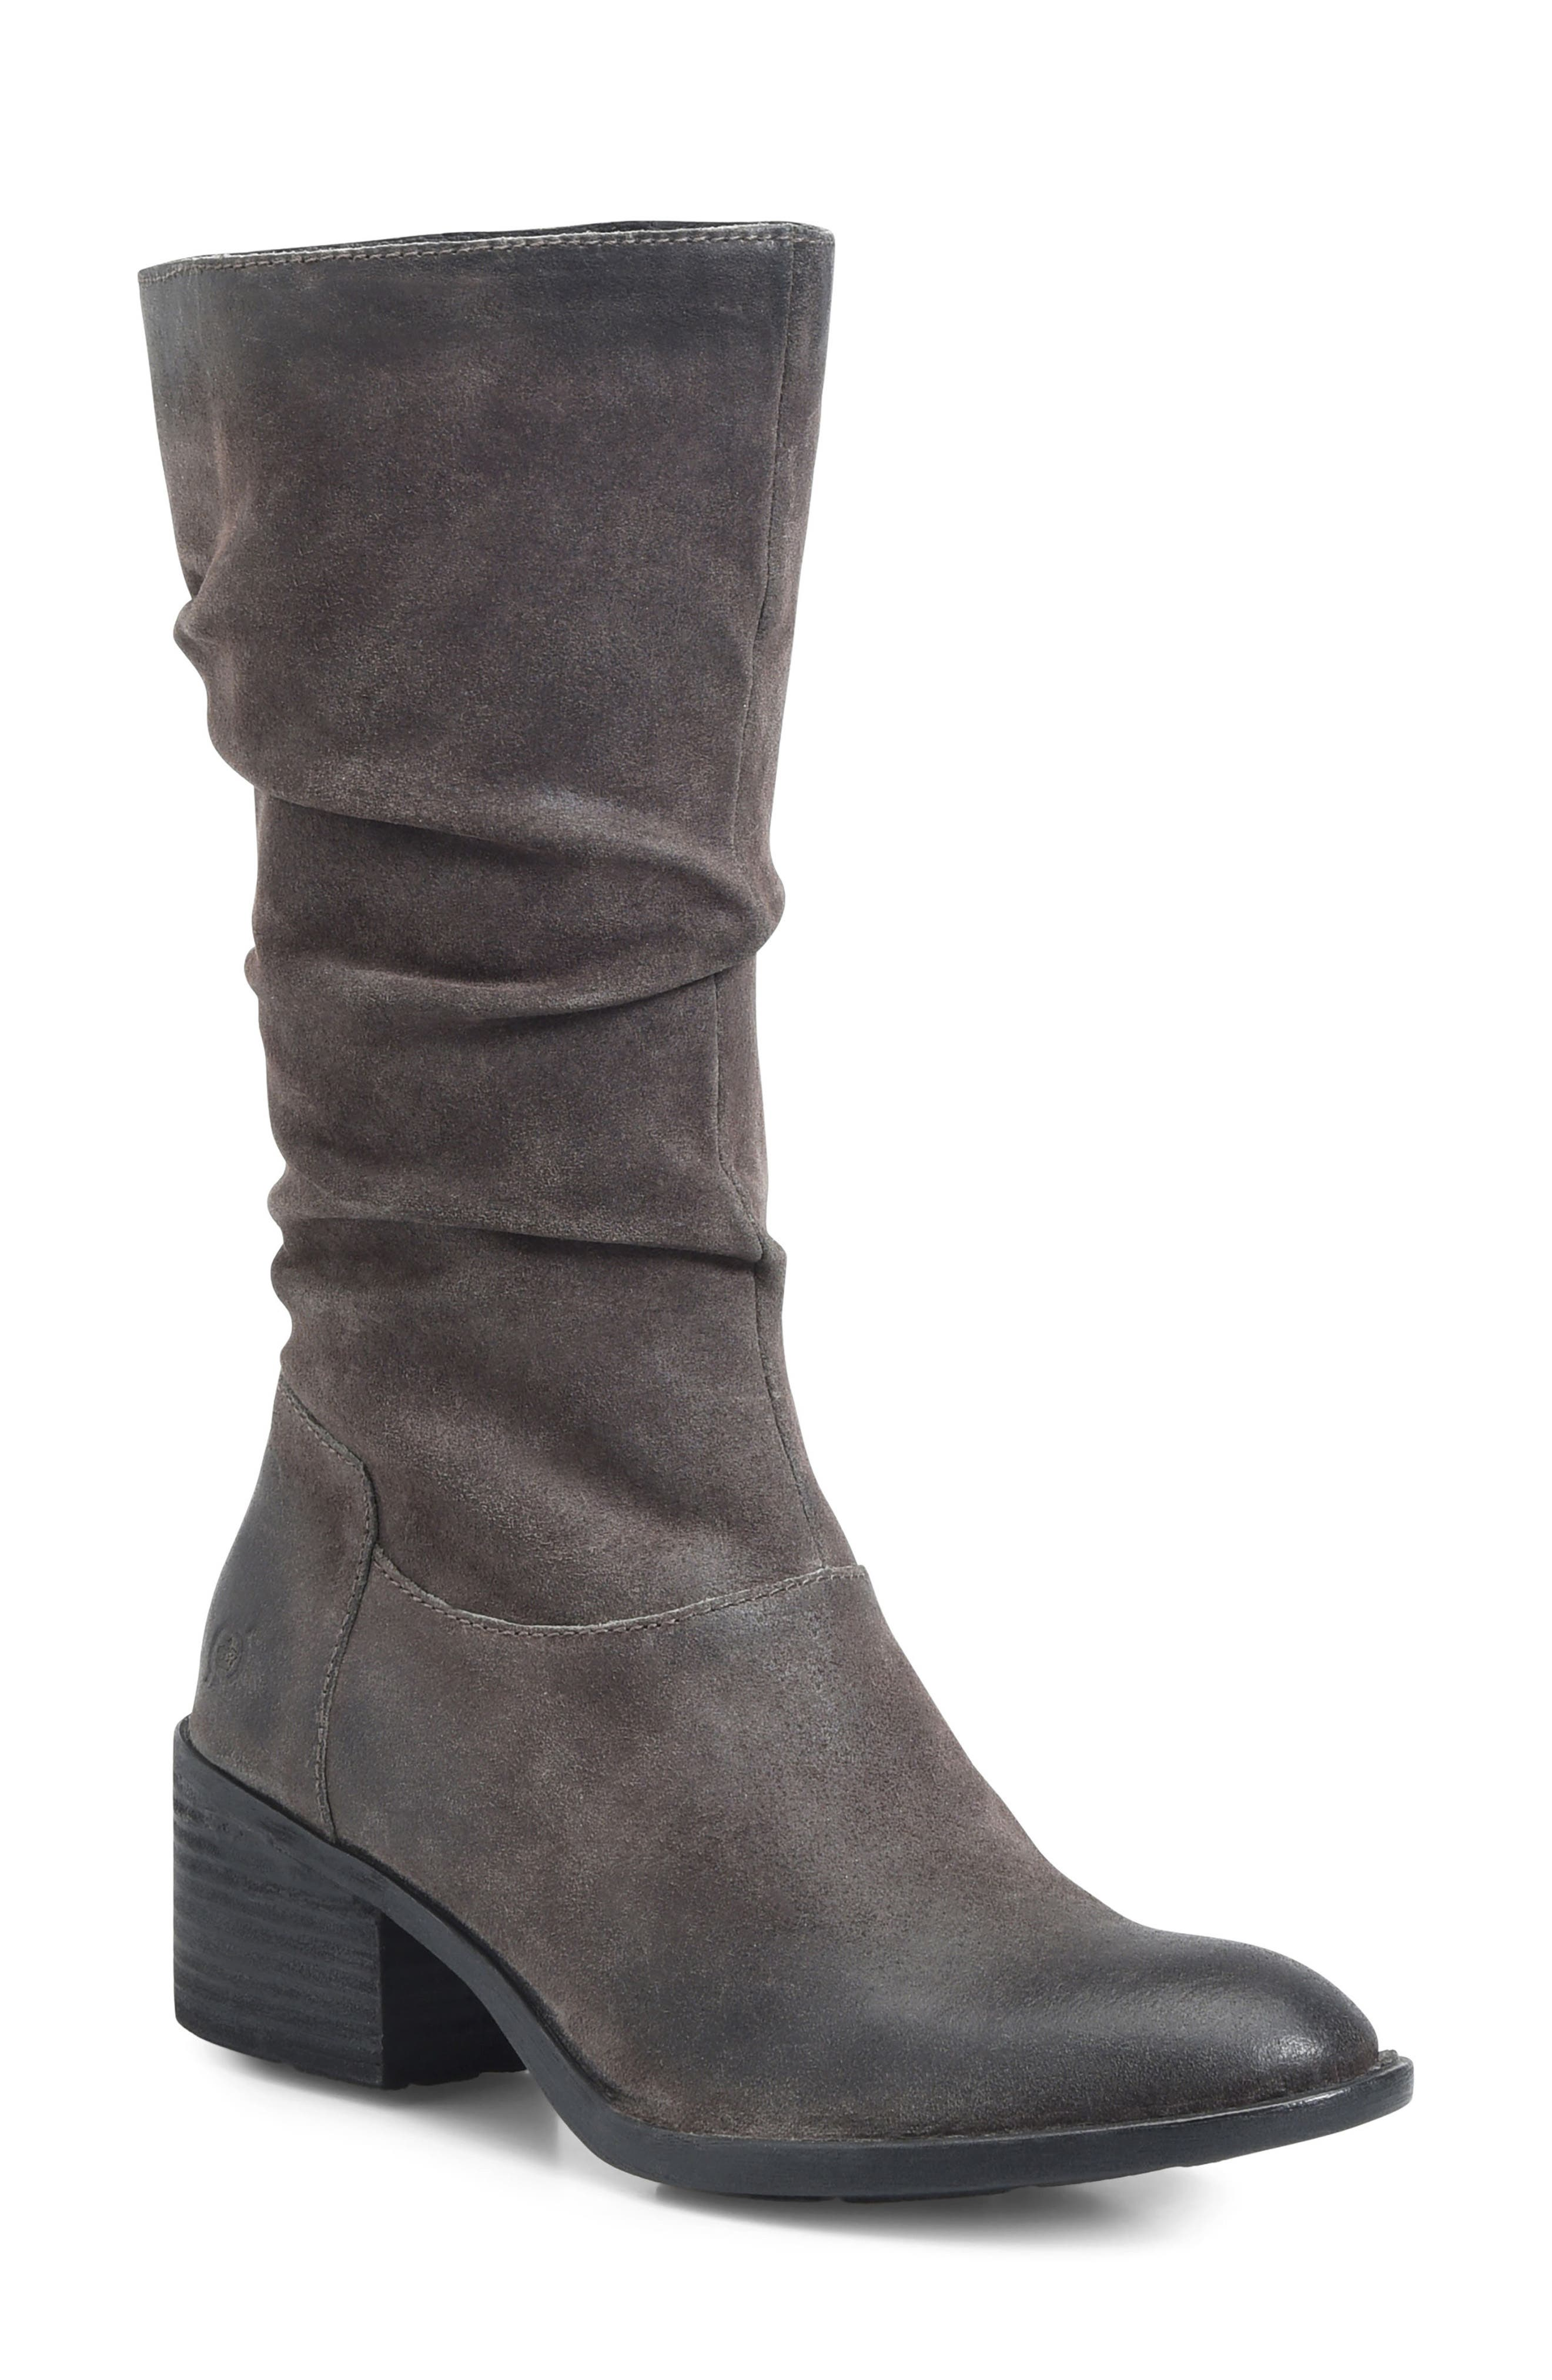 Alternate Image 1 Selected - Børn Peavy Slouch Boot (Women)